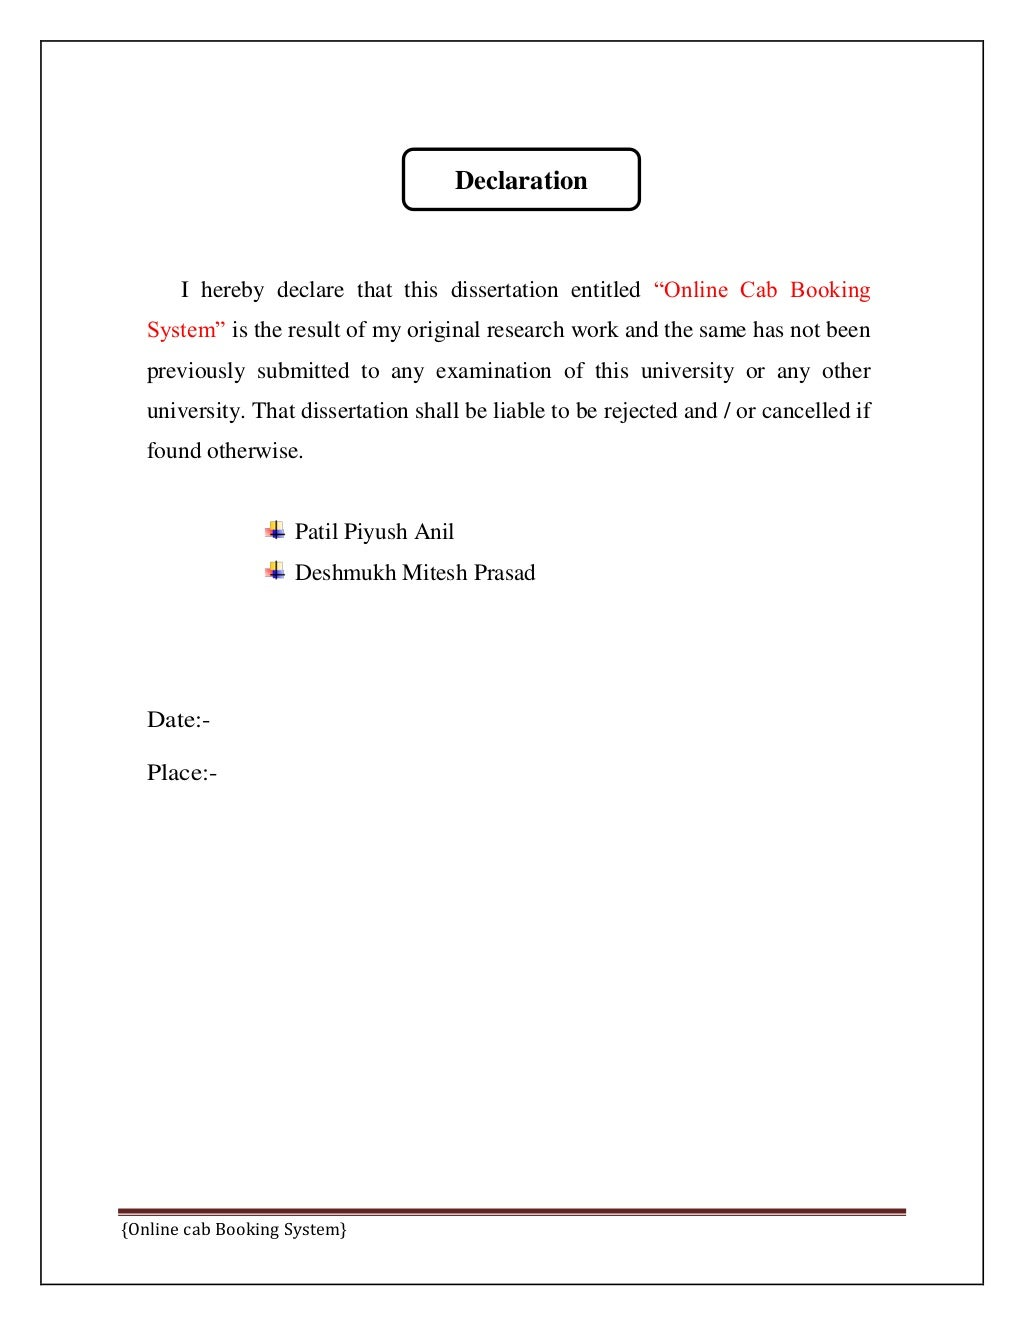 Online Cab Booking System Final Report page 4